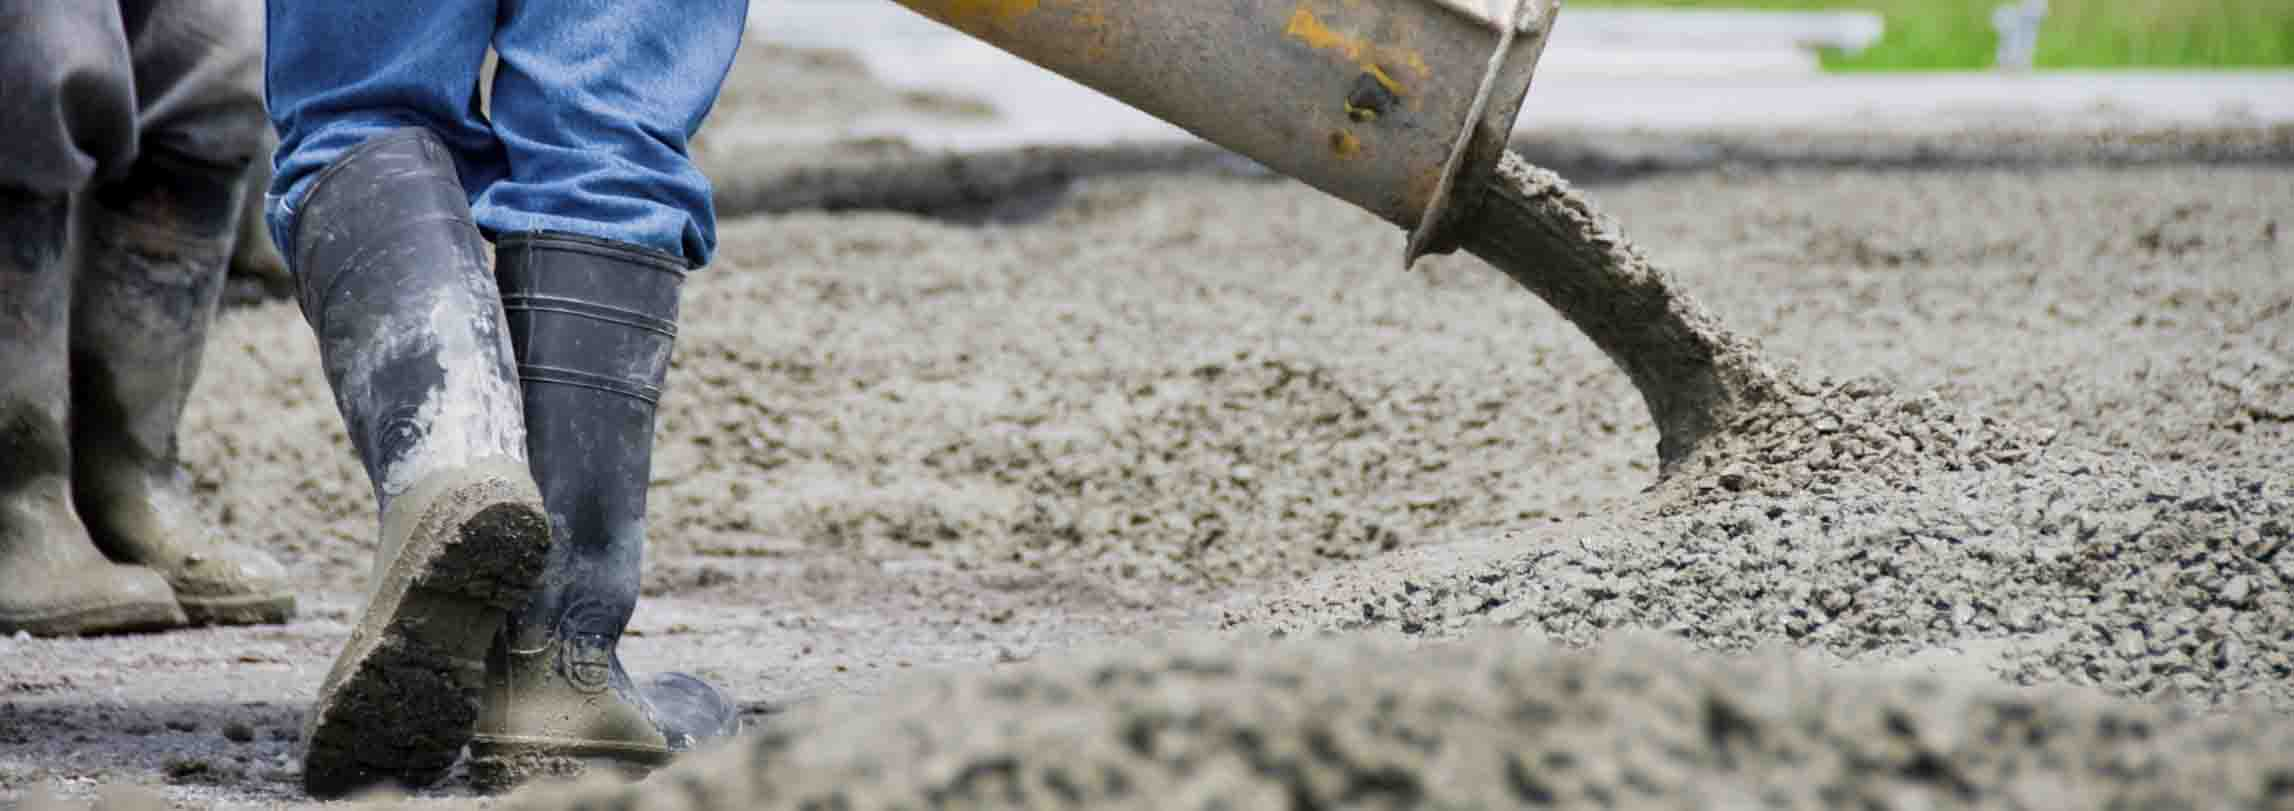 the fresh properties of concrete workability construction essay Full-text paper (pdf): study of the rheology of self-compacting concrete with fine recycled concrete aggregates.